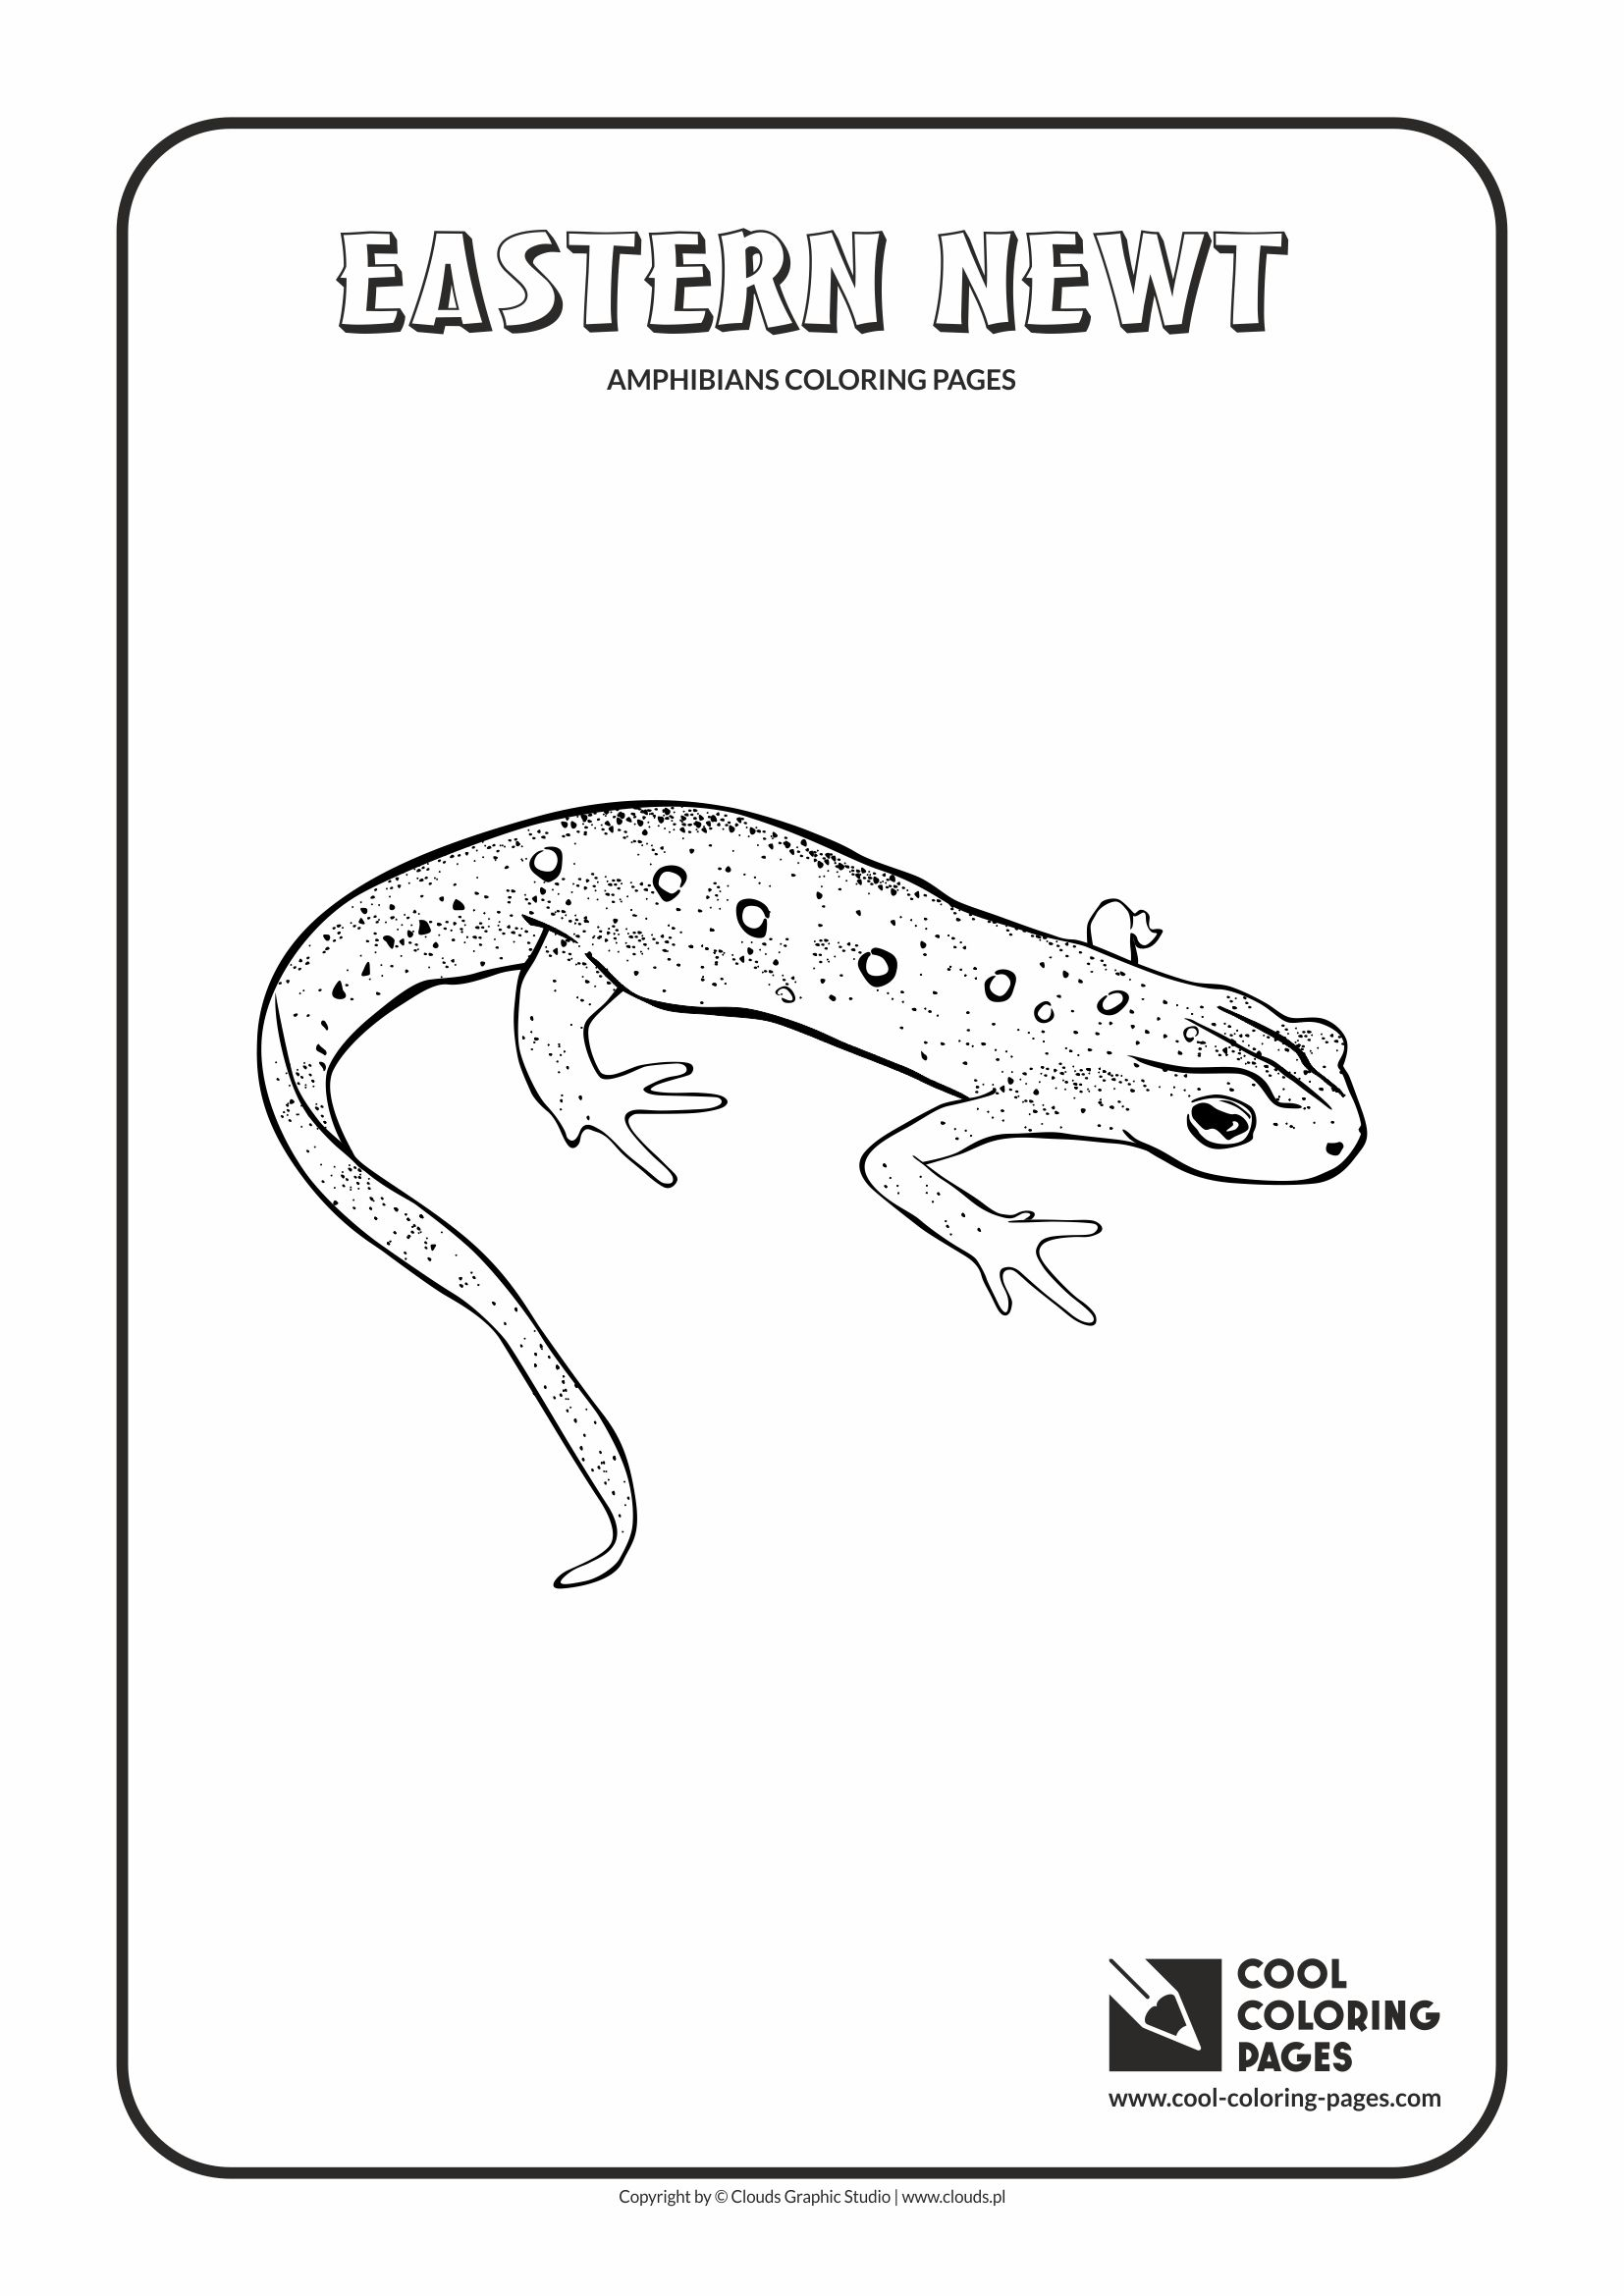 Cool Coloring Pages - Animals / Eastern newt / Coloring page with eastern newt